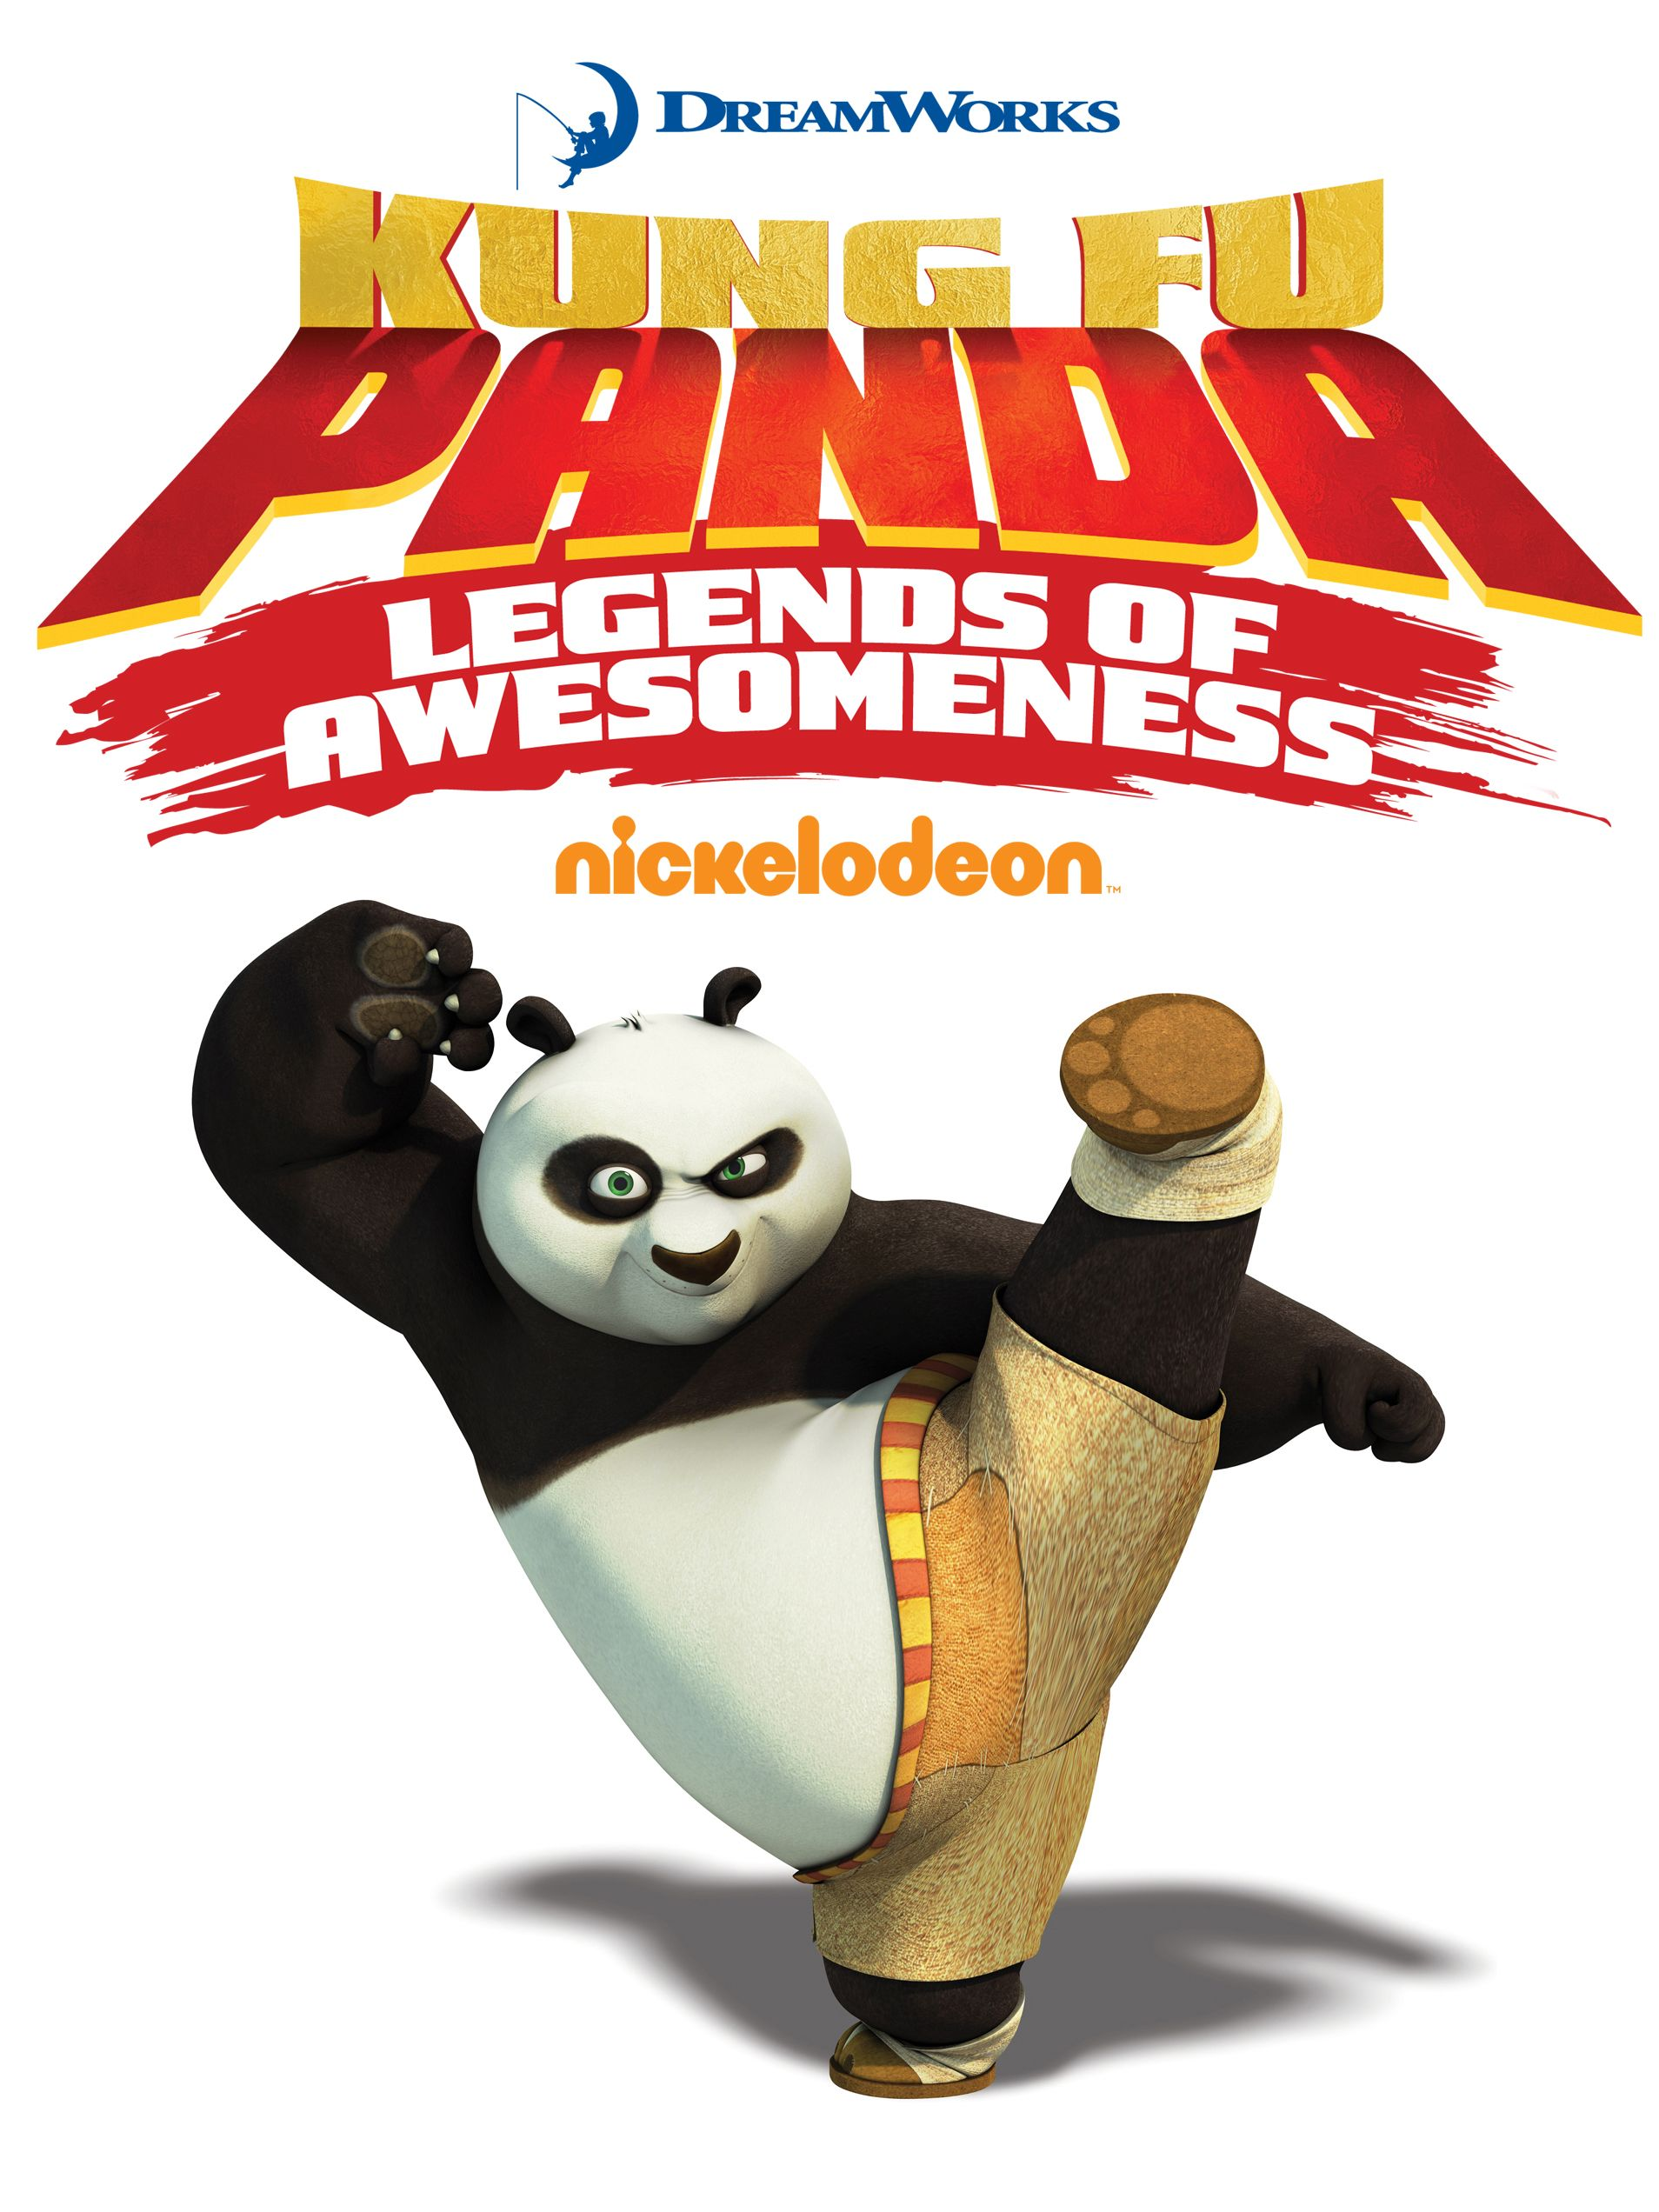 — Kung Fu Panda: Legend Of Awesomeness